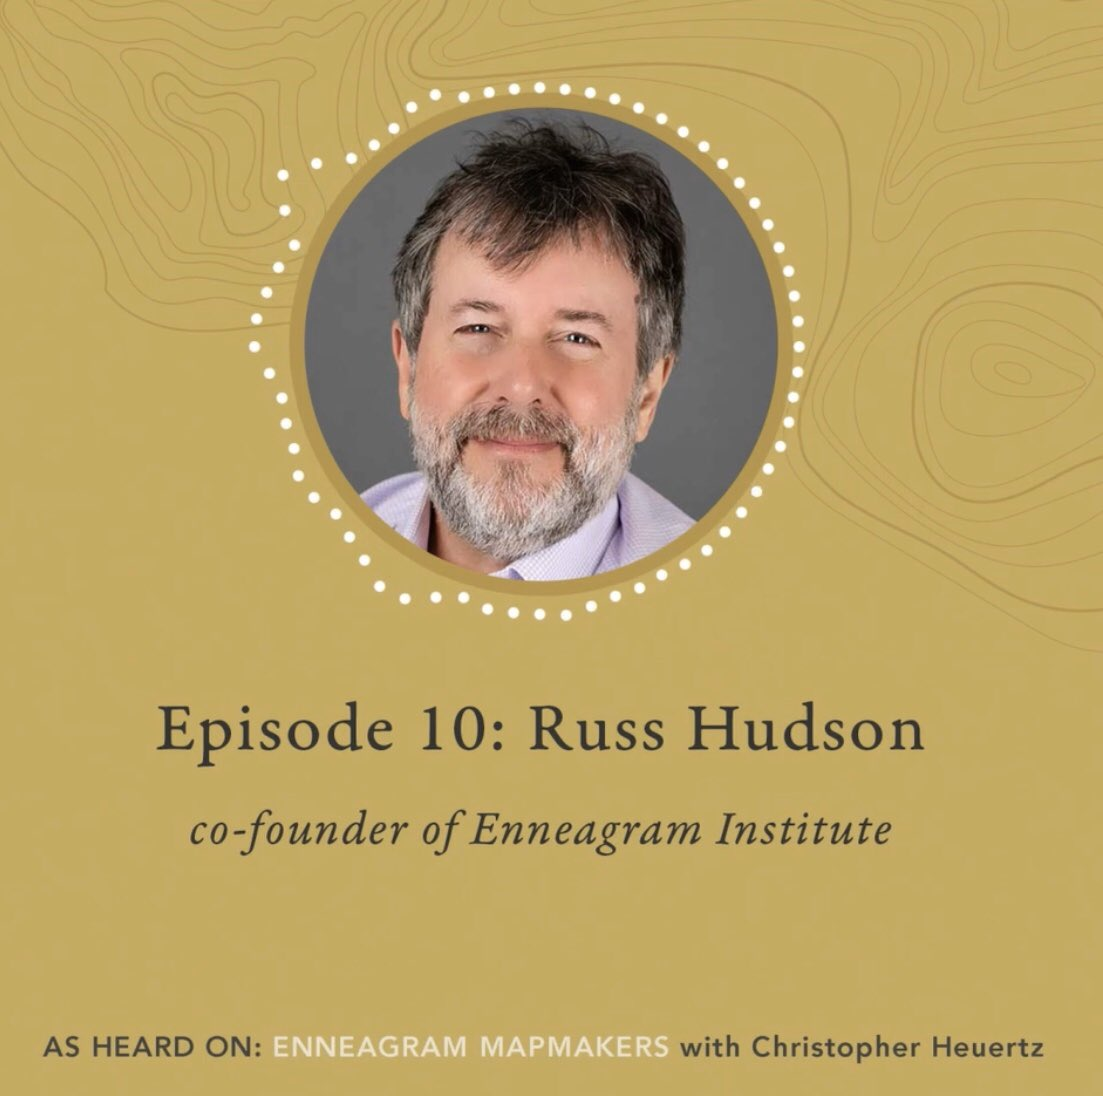 Hey hey! Newest episode of #Enneagram Mapmakers with @Russ_Hudson54 is out. Check it! https://t.co/FYxZ3RaieO